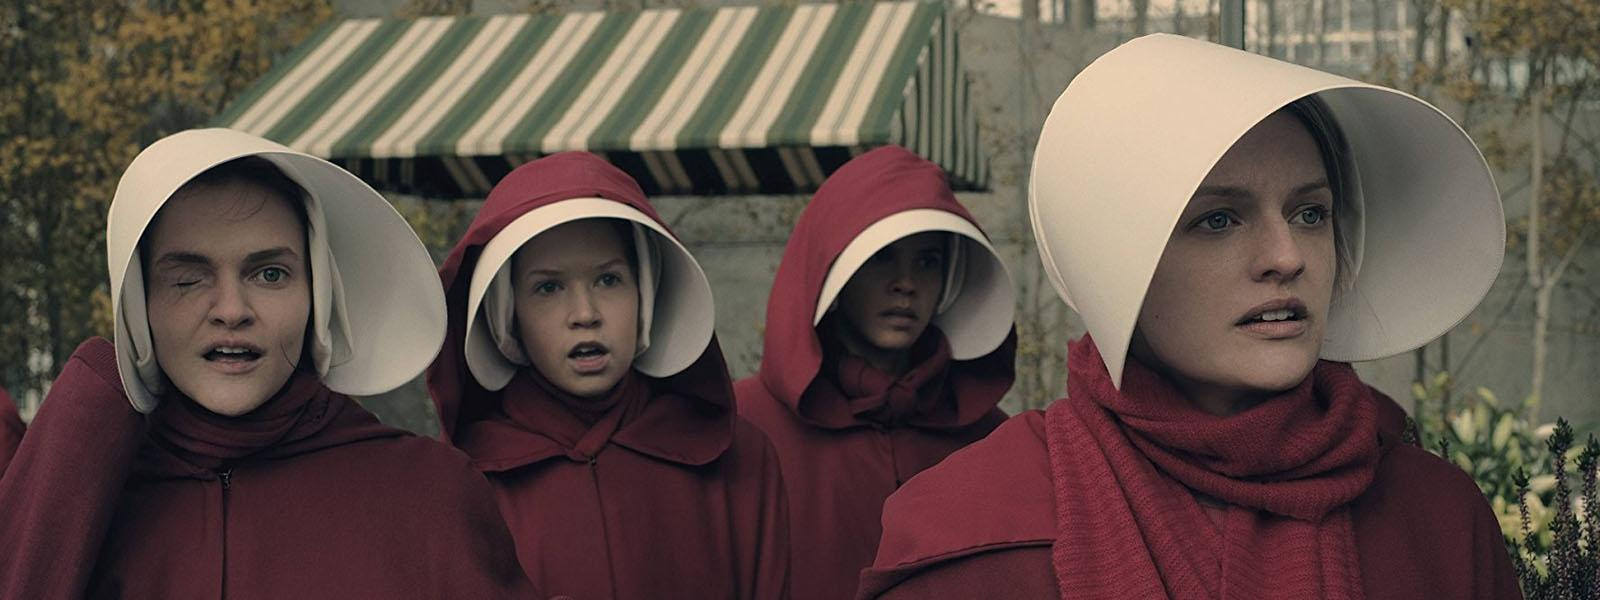 """See director of photography Zoë White's work in """"The Handmaid's Tale"""" on Hulu"""